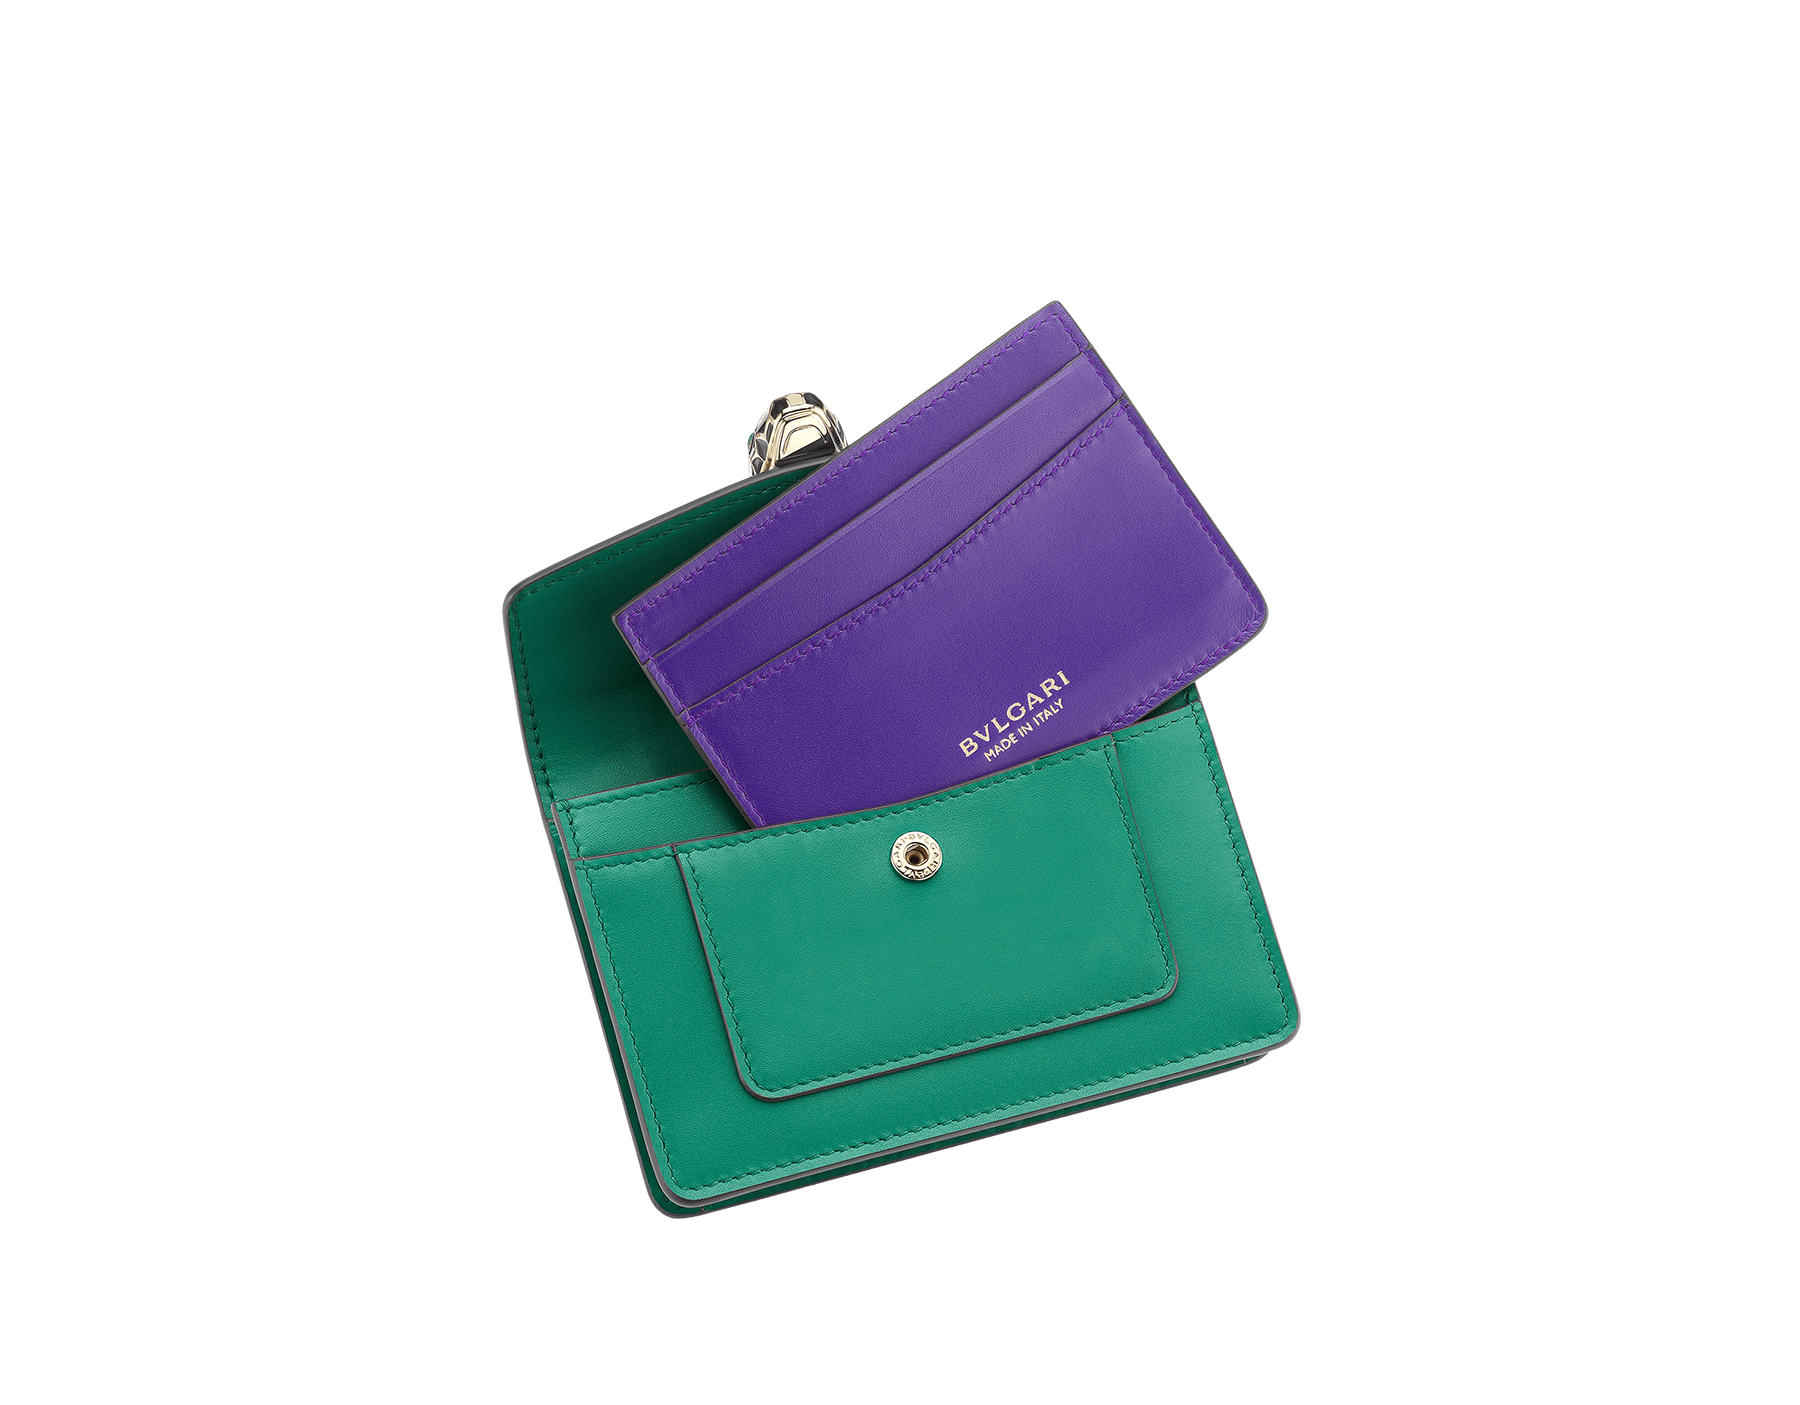 Pocket credit card holder in emerald green and violet amethyst calf leather, with amethyst purple nappa lining. Brass light gold plated Serpenti head stud closure in black and white enamel, with eyes in green malachite. 285149 image 2